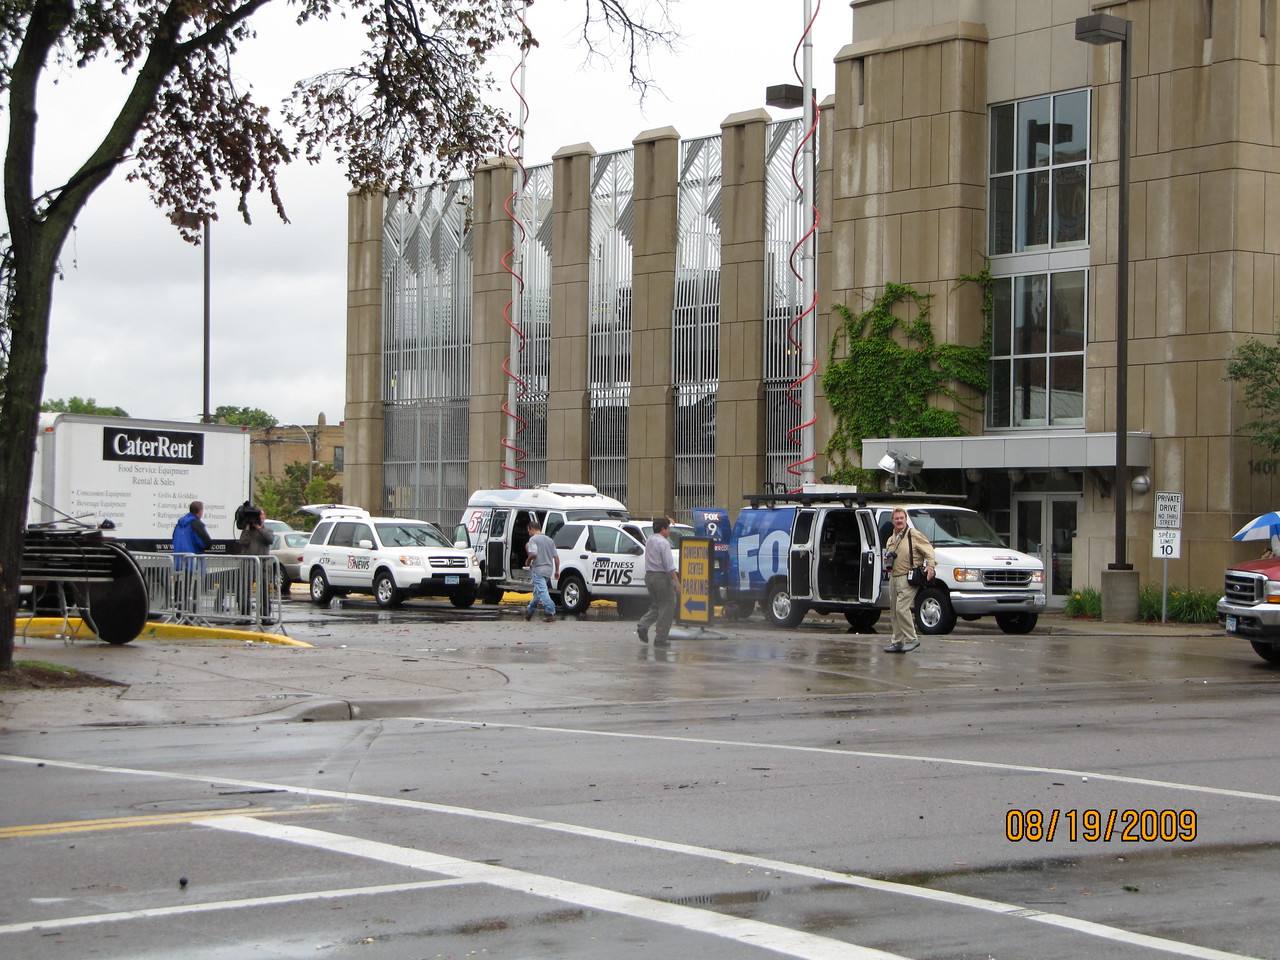 News crews at the convention center to cover the 2009 Churchwide Assembly were right in the path of the tornado.